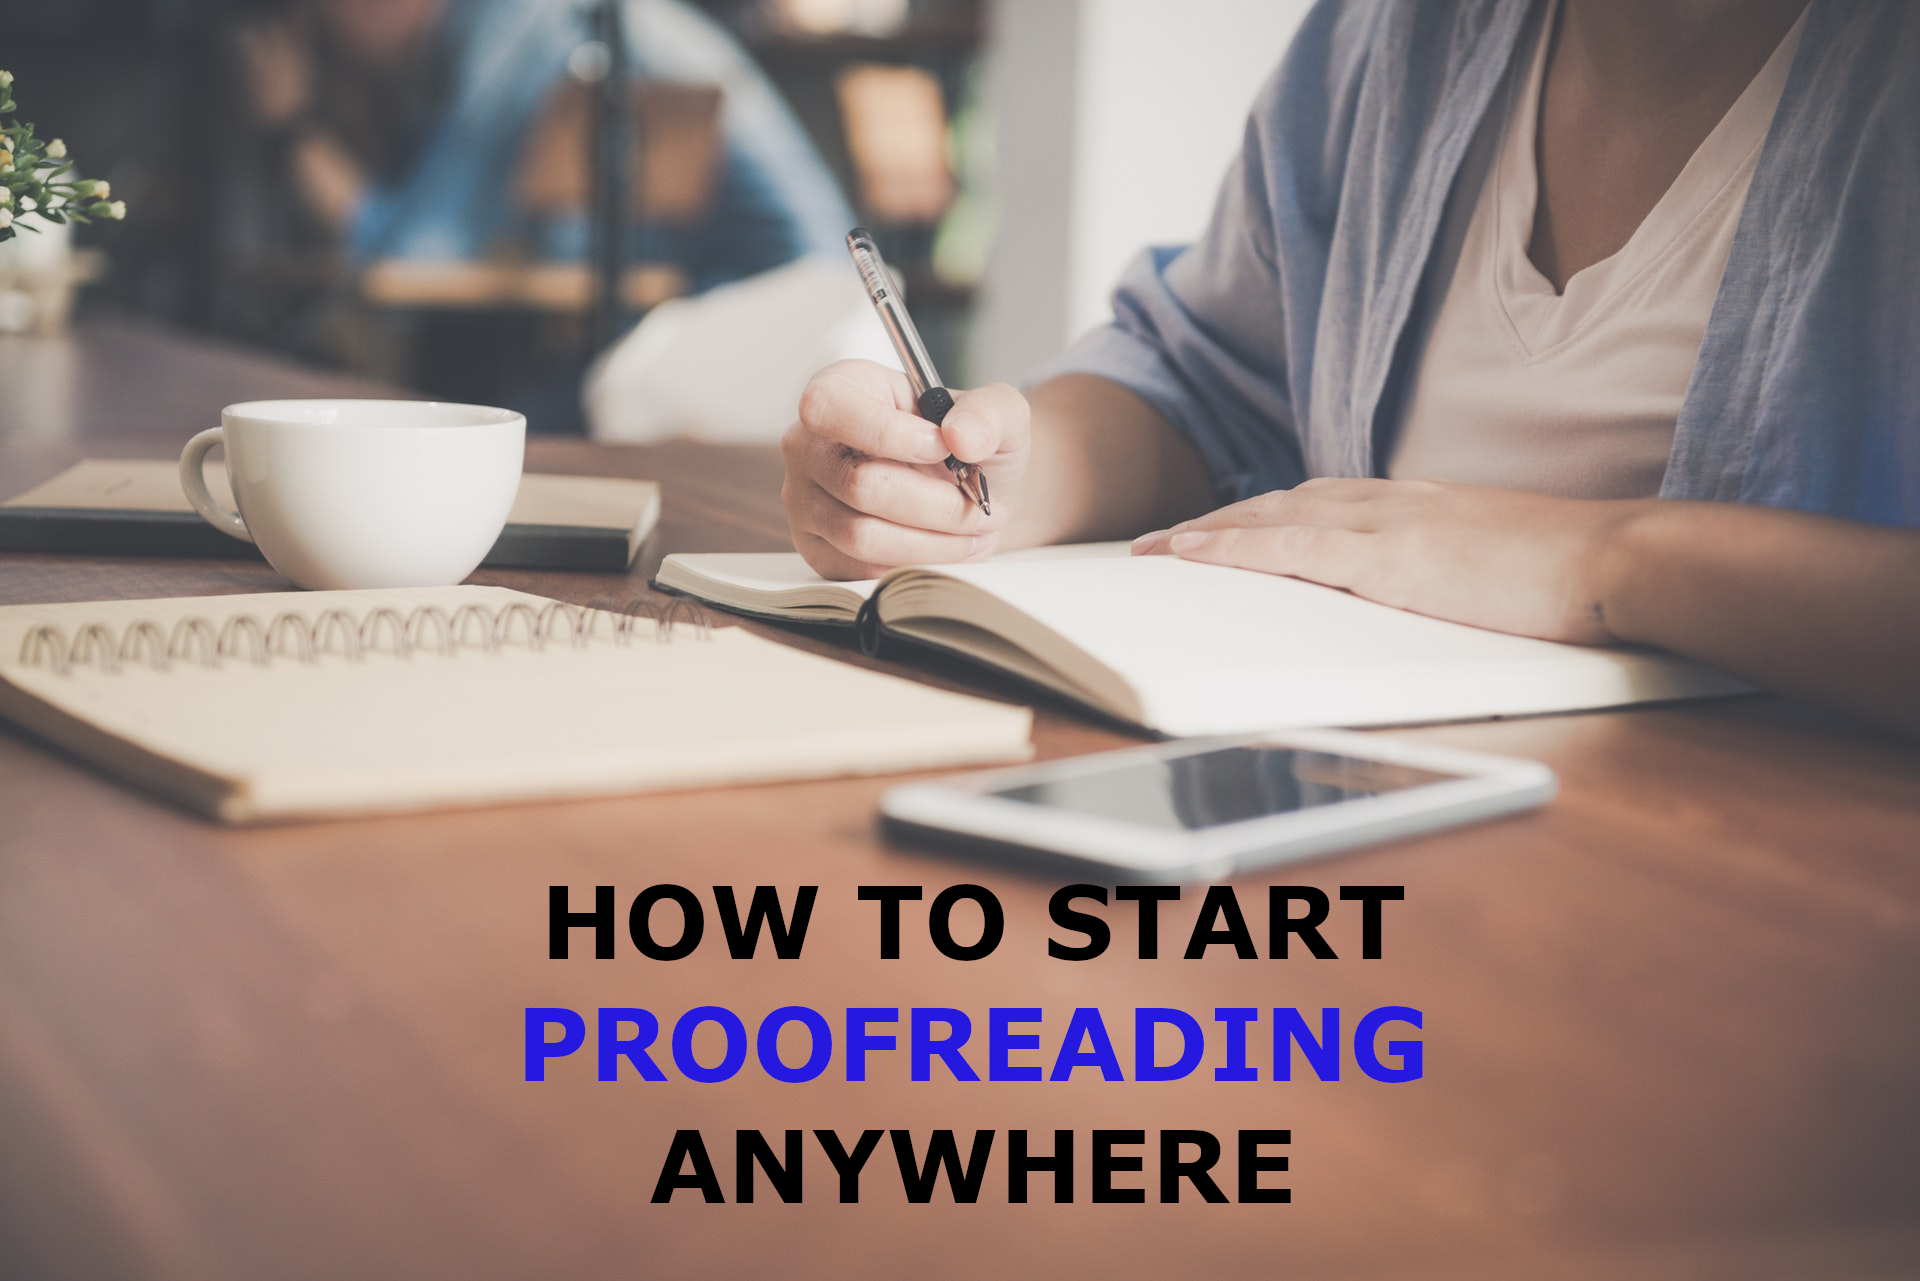 How To Start Proofreading Anywhere